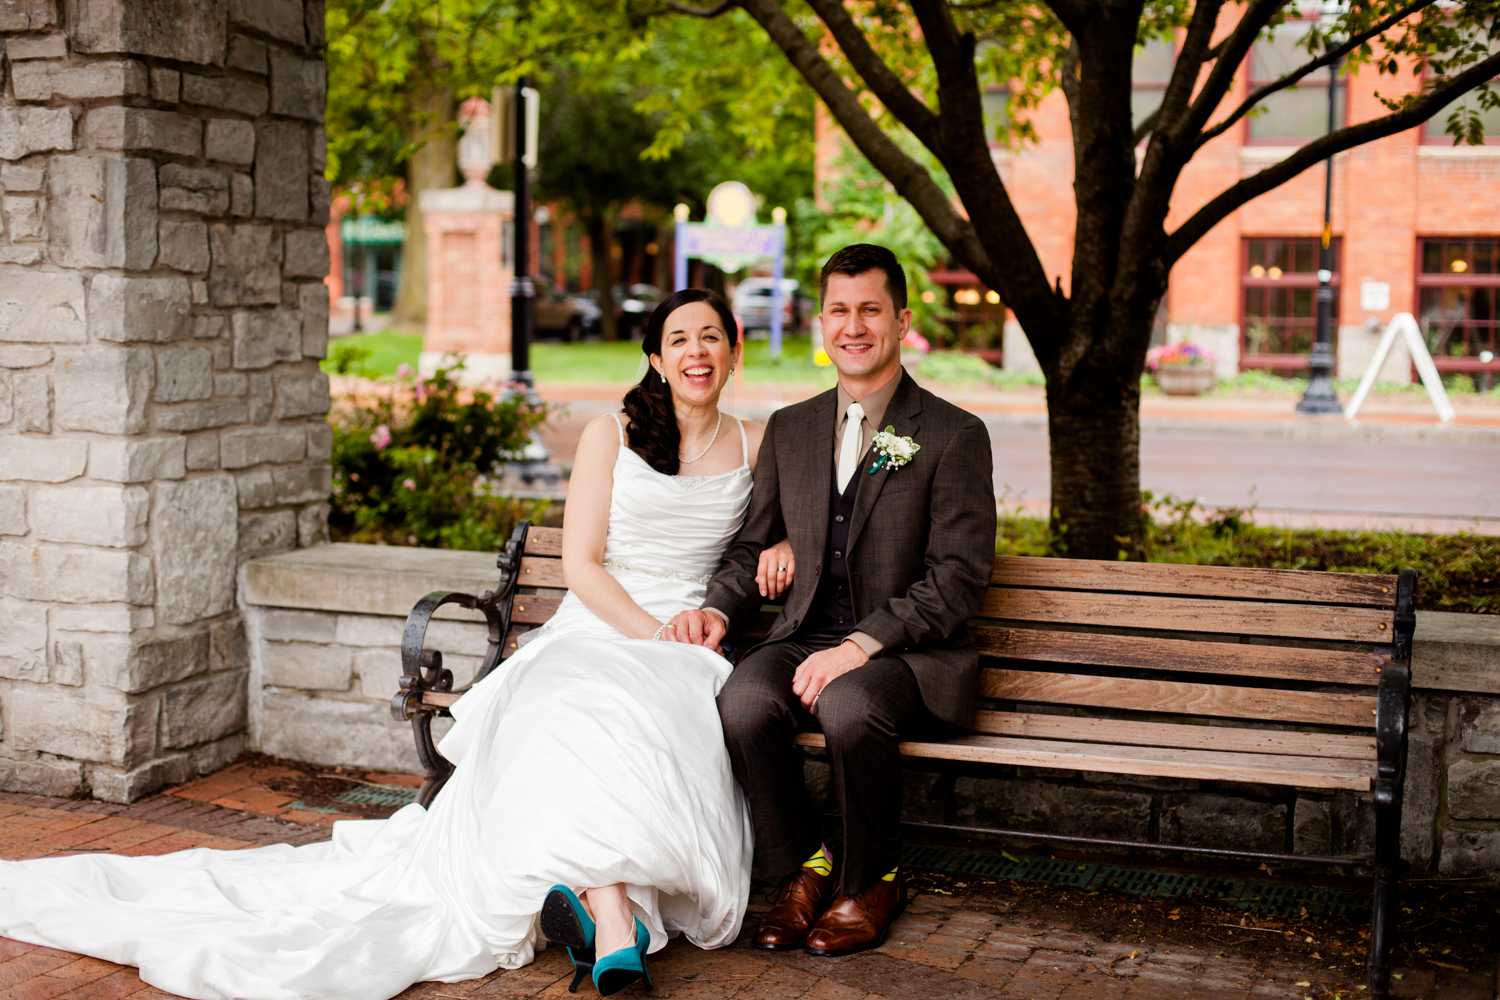 Bride and groom sit on bench laughing